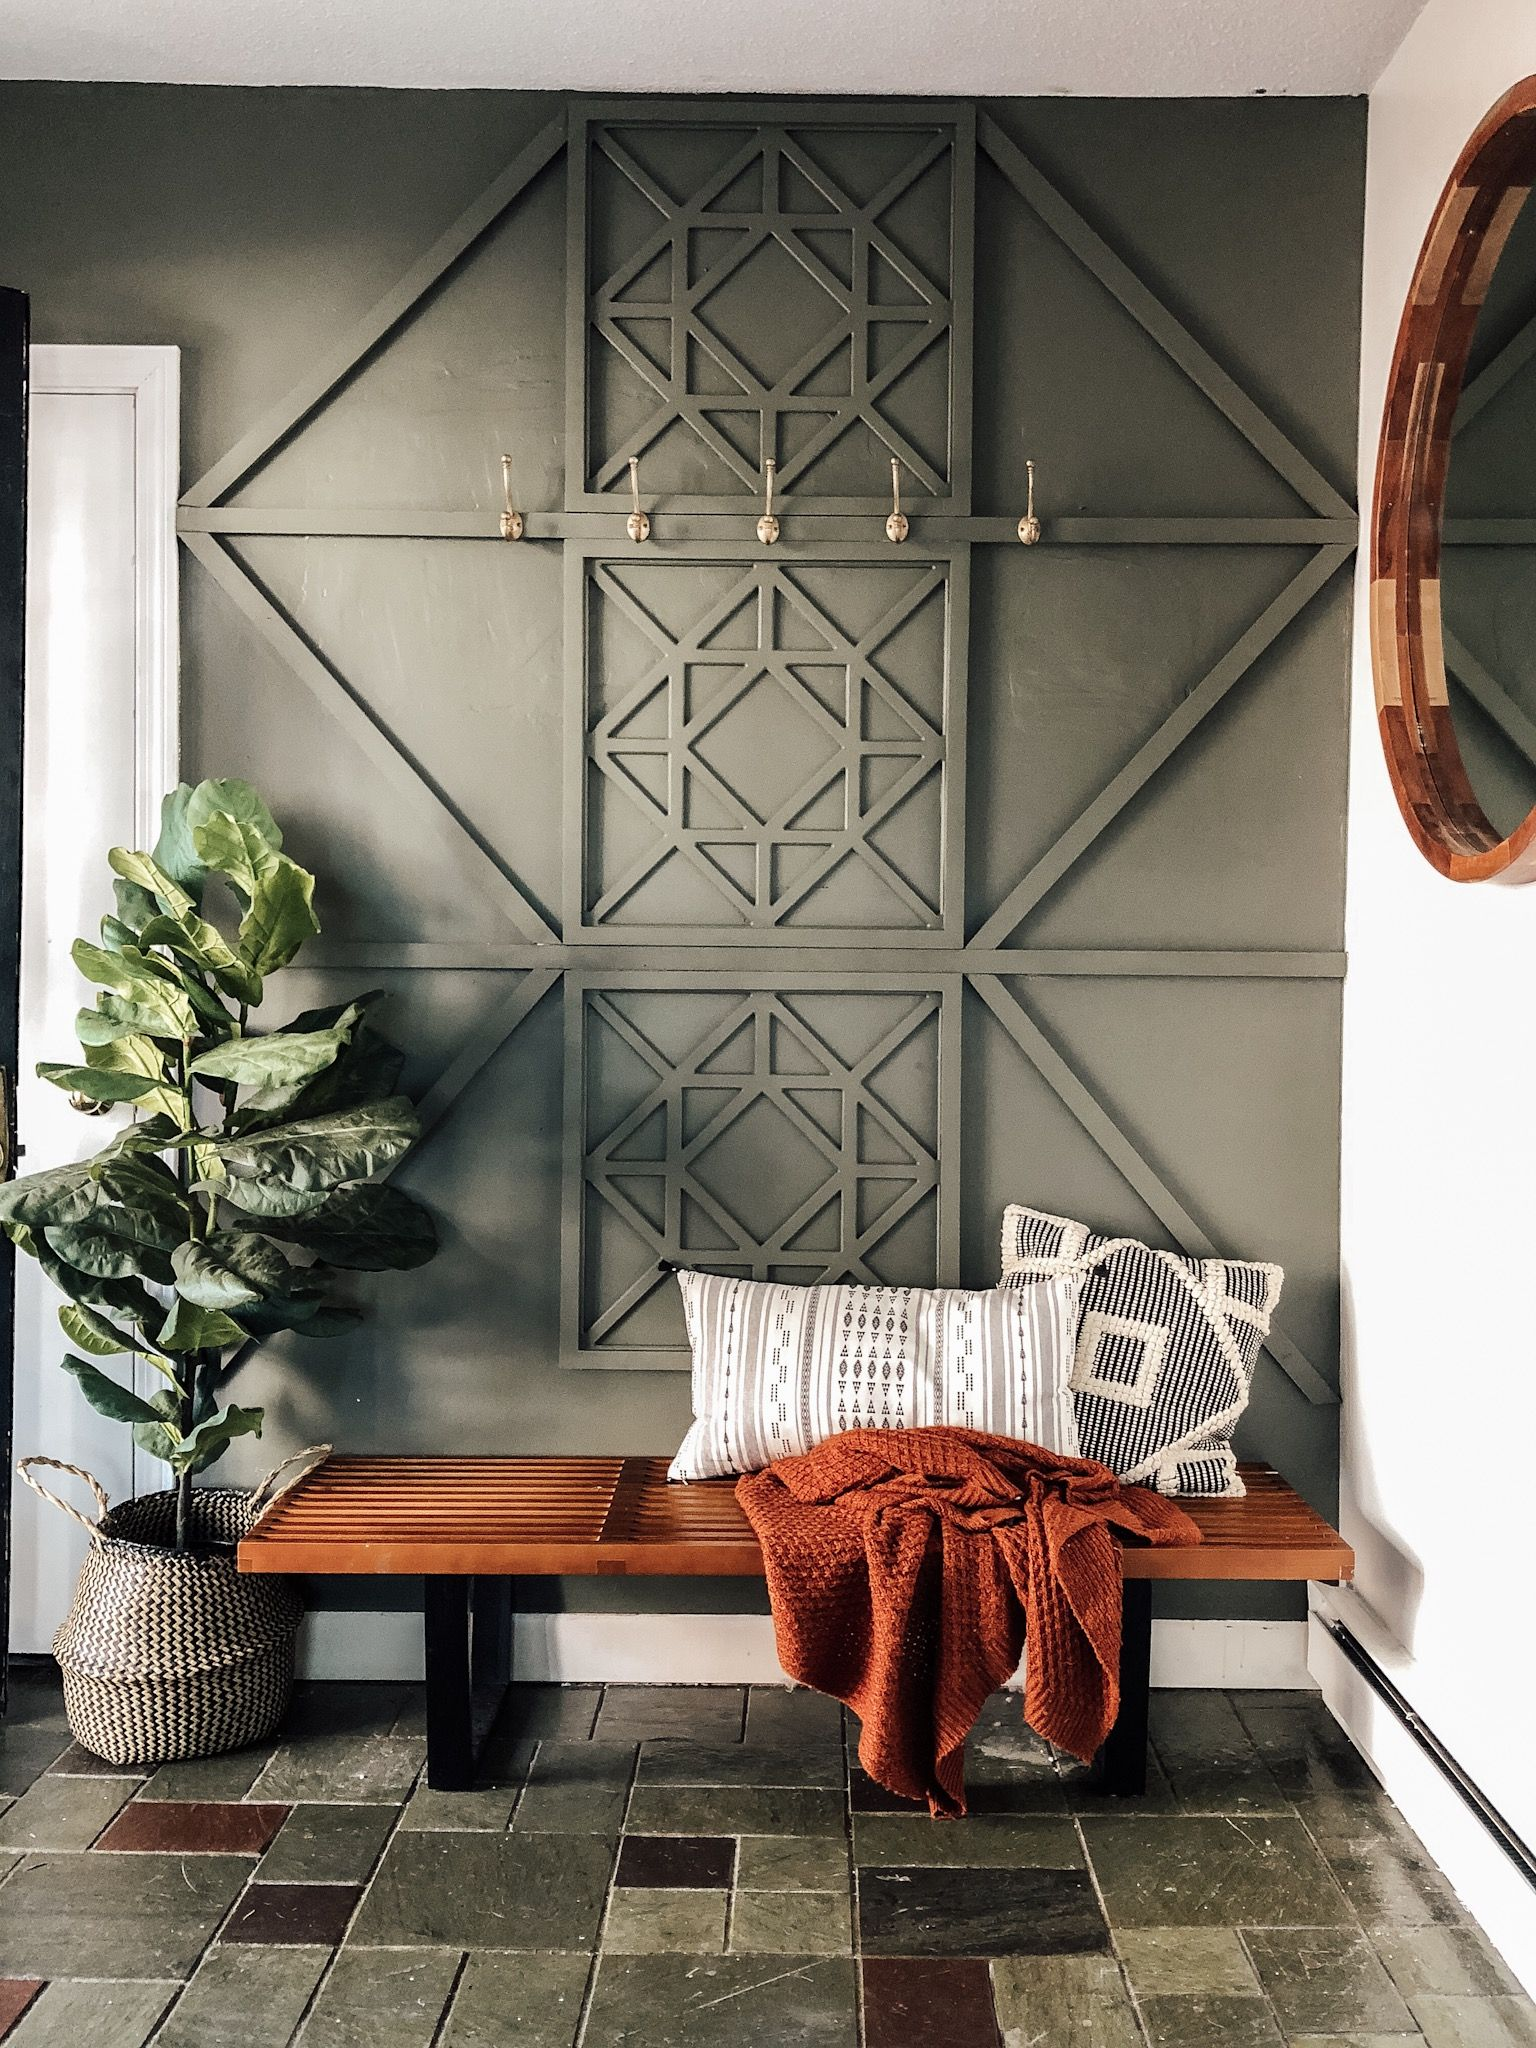 Our New Entryway: With a DIY Wood Feature Wall #woodfeaturewalls